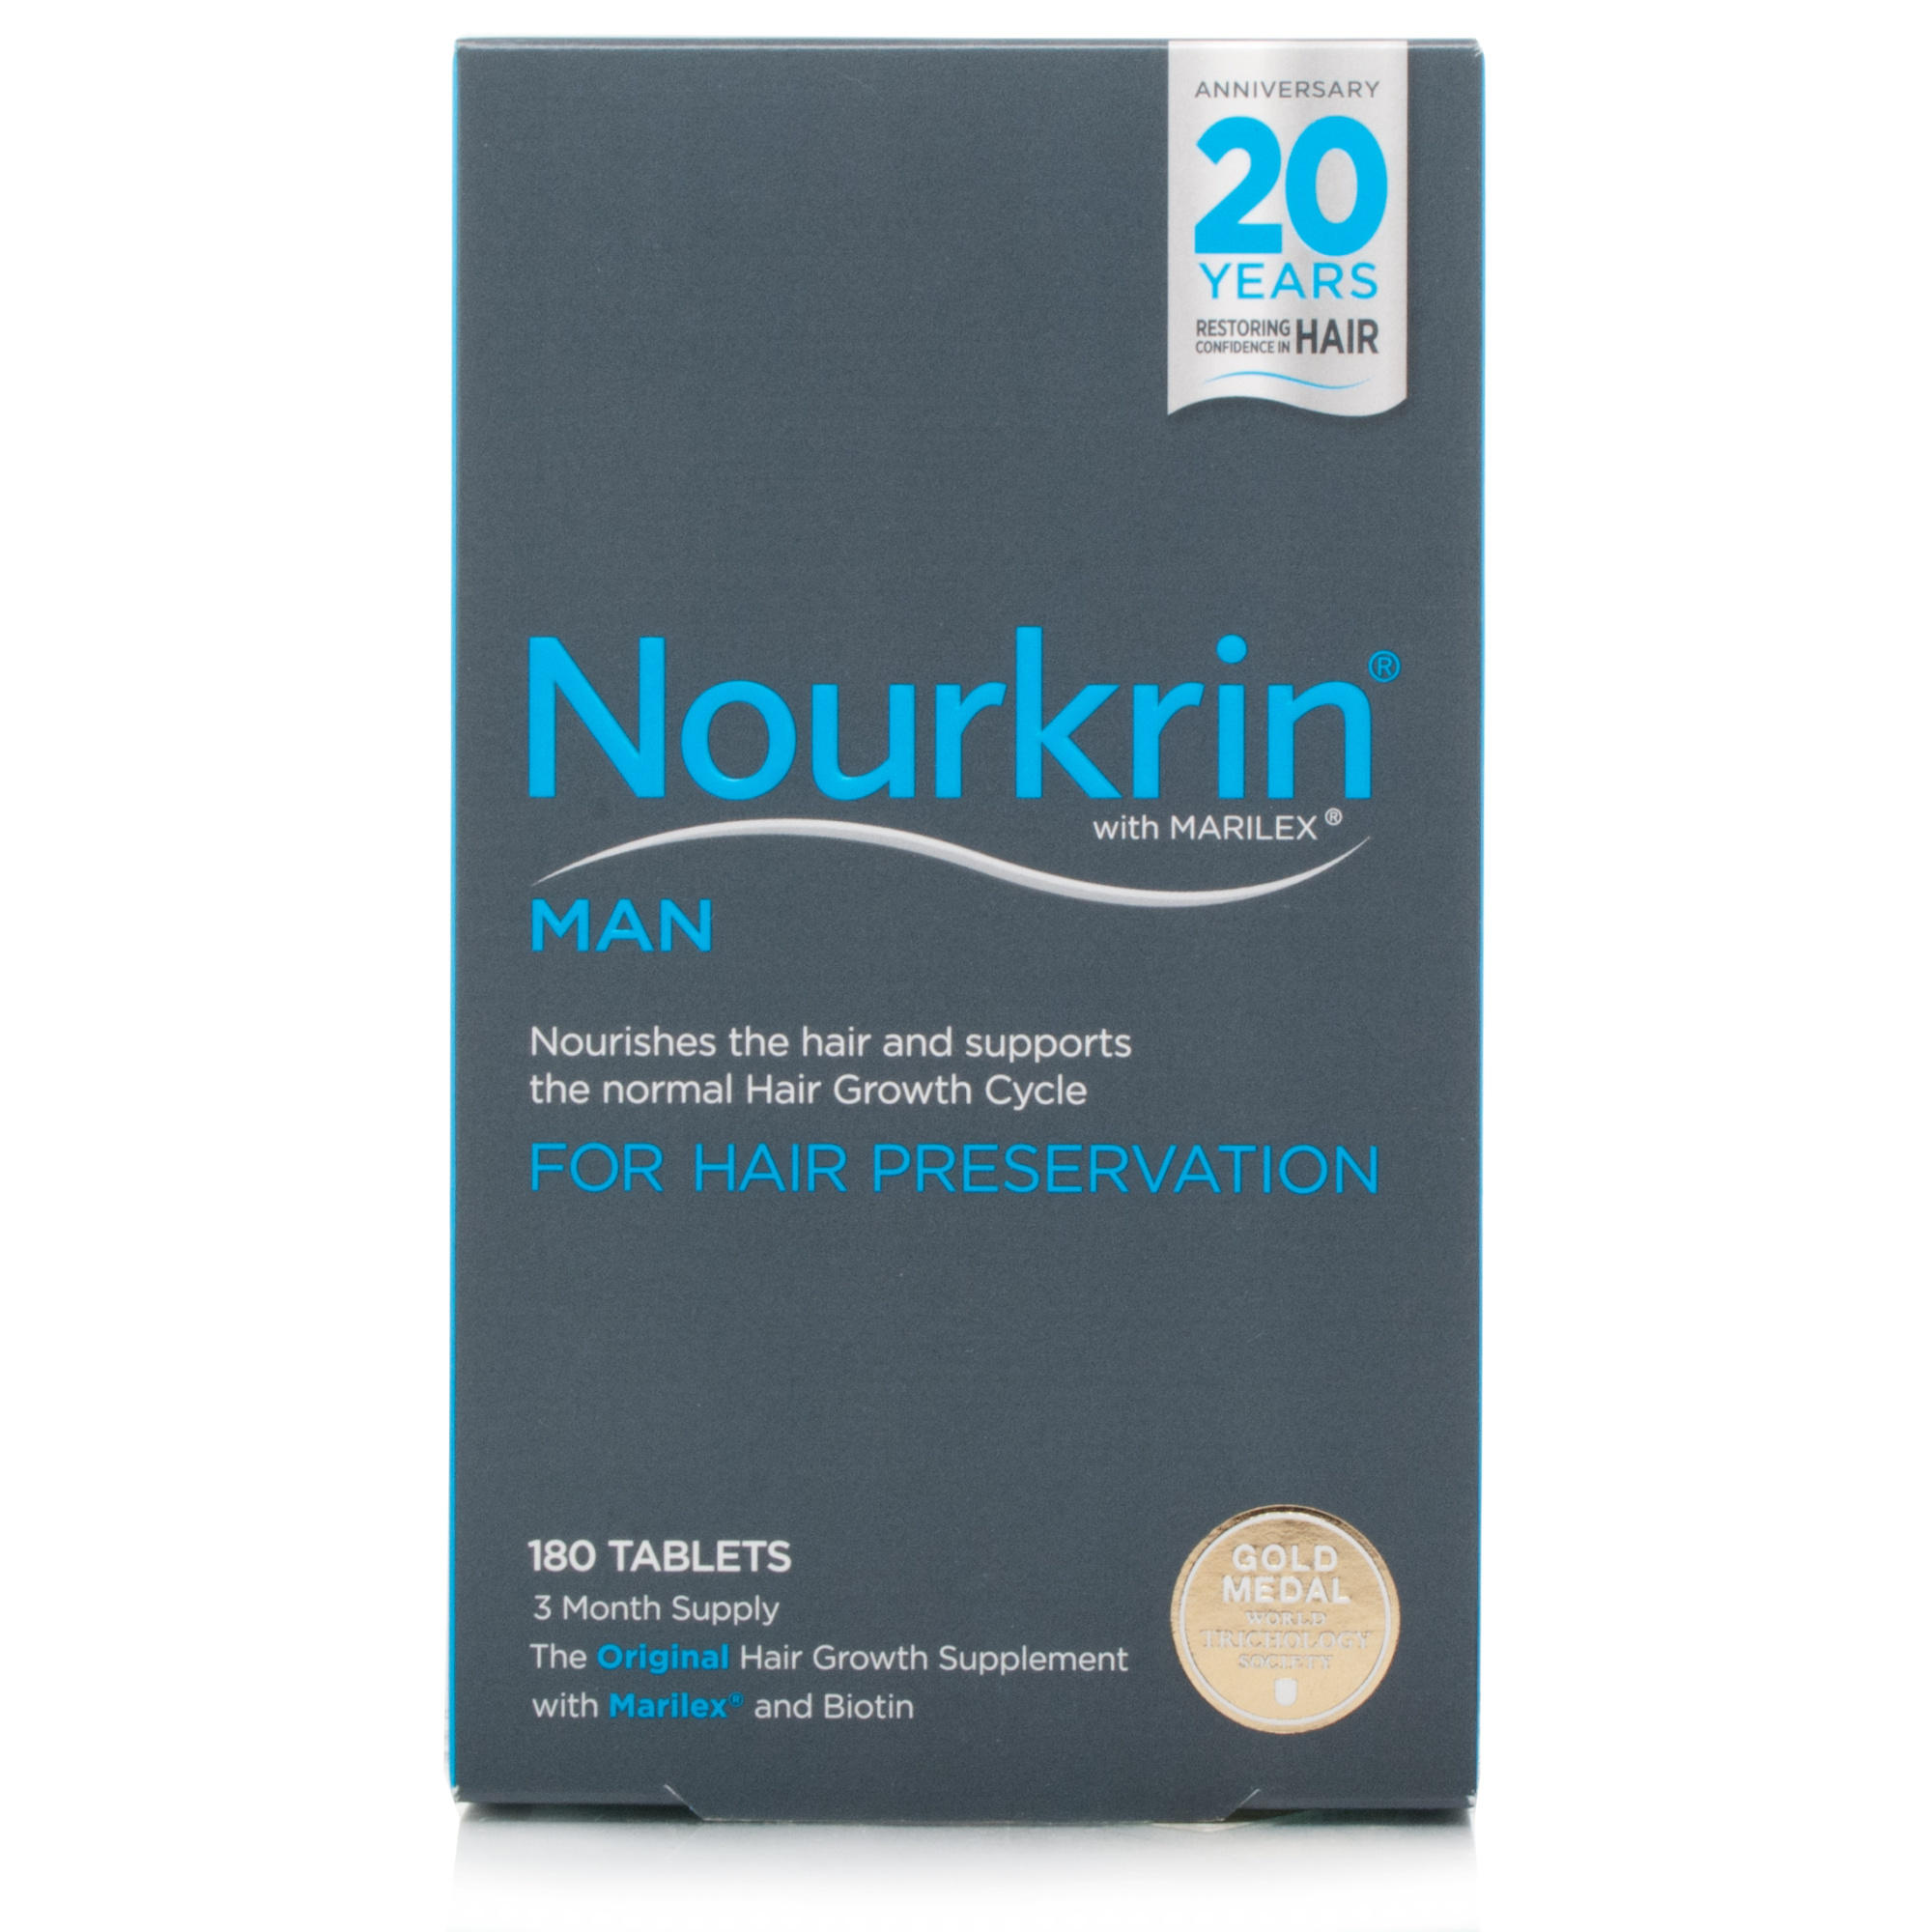 Nourkrin Man 3 Month Supply